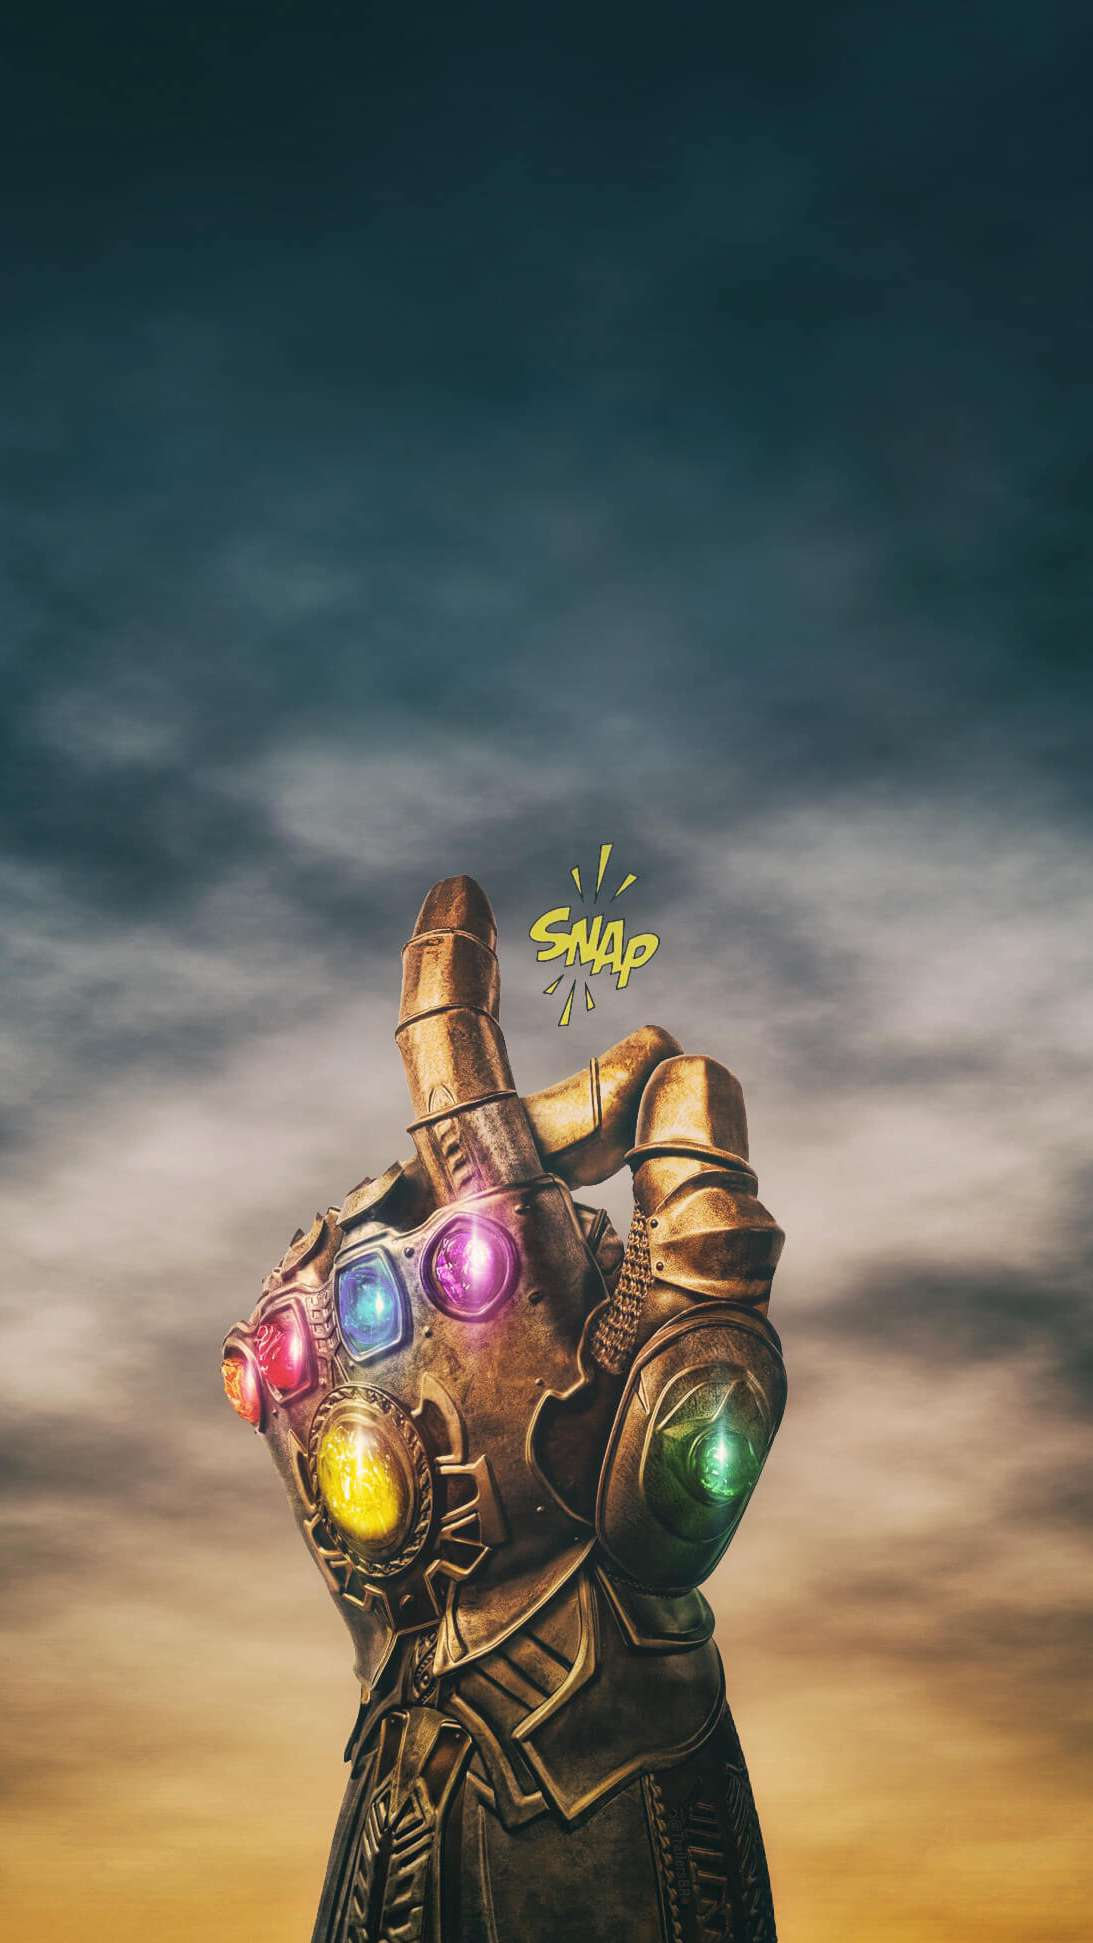 Popular Wallpapers For Iphone 5 Thanos Snap Iphone Wallpaper Iphone Wallpapers